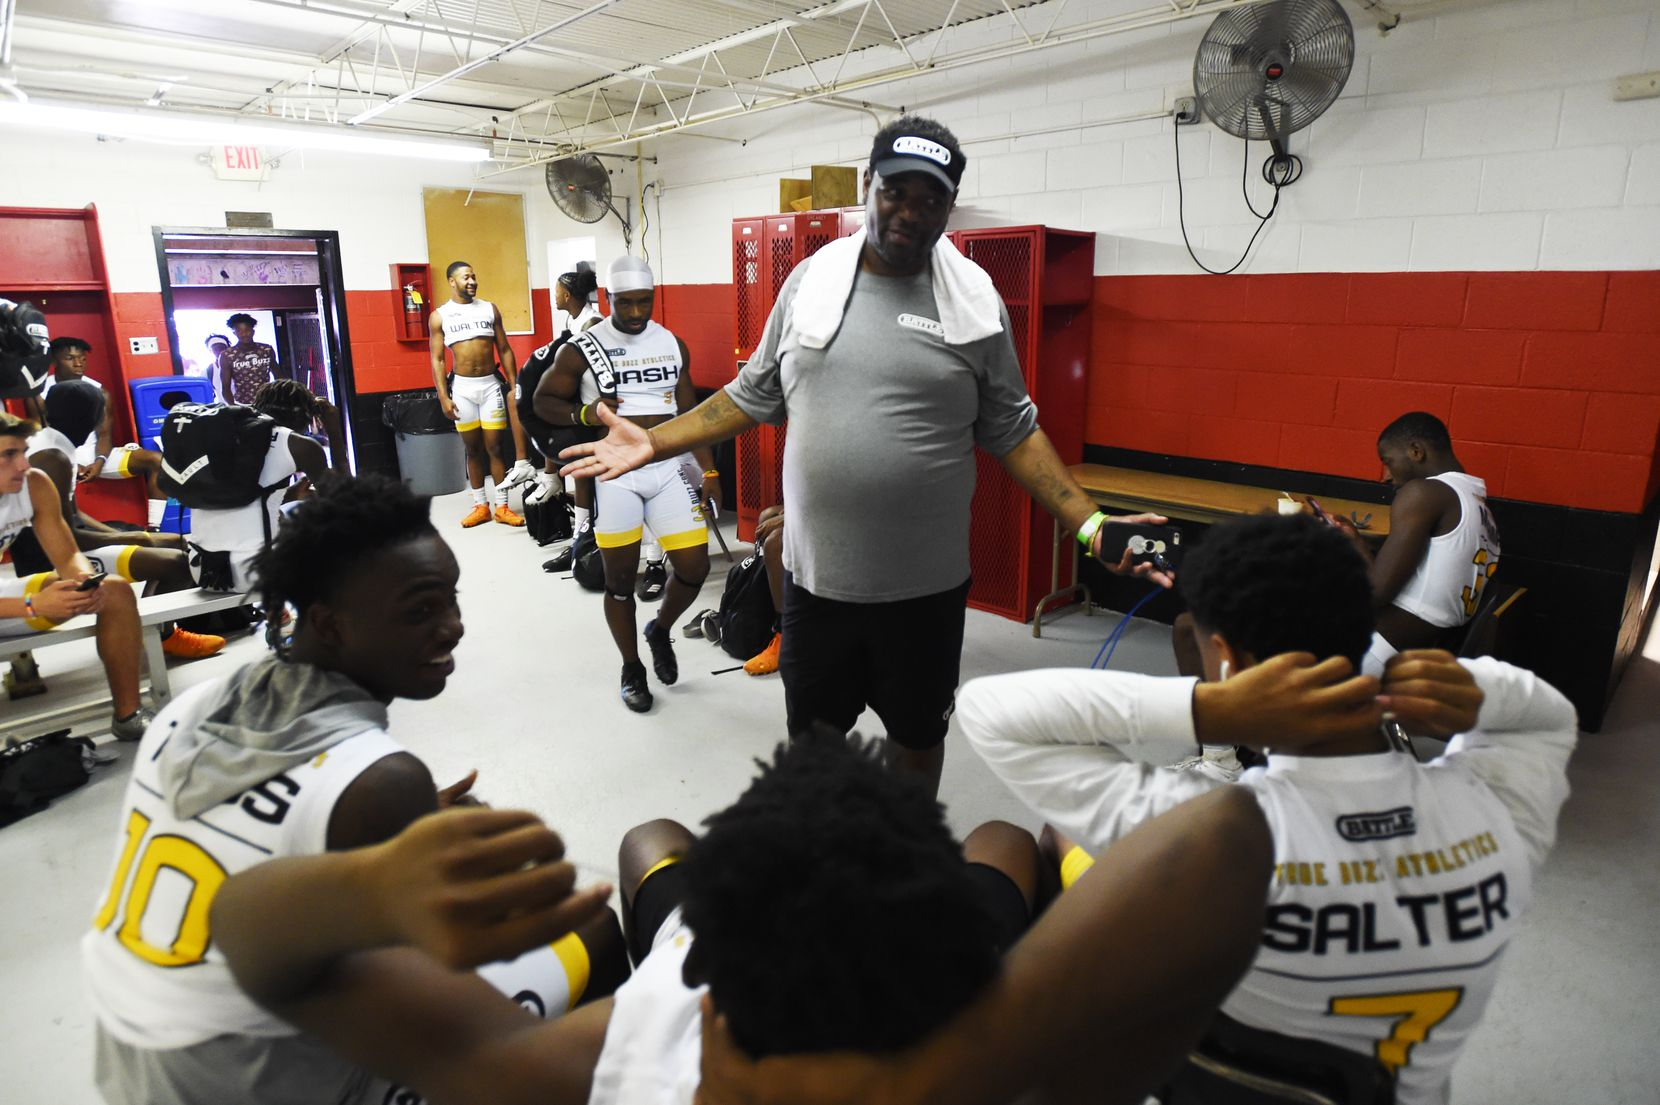 True Buzz coach Carlos Word talks to his players in the locker room prior to the Pylon 7v7 National Championship event held at Woodward Academy in Atlanta, Georgia, on May 26, 2019.